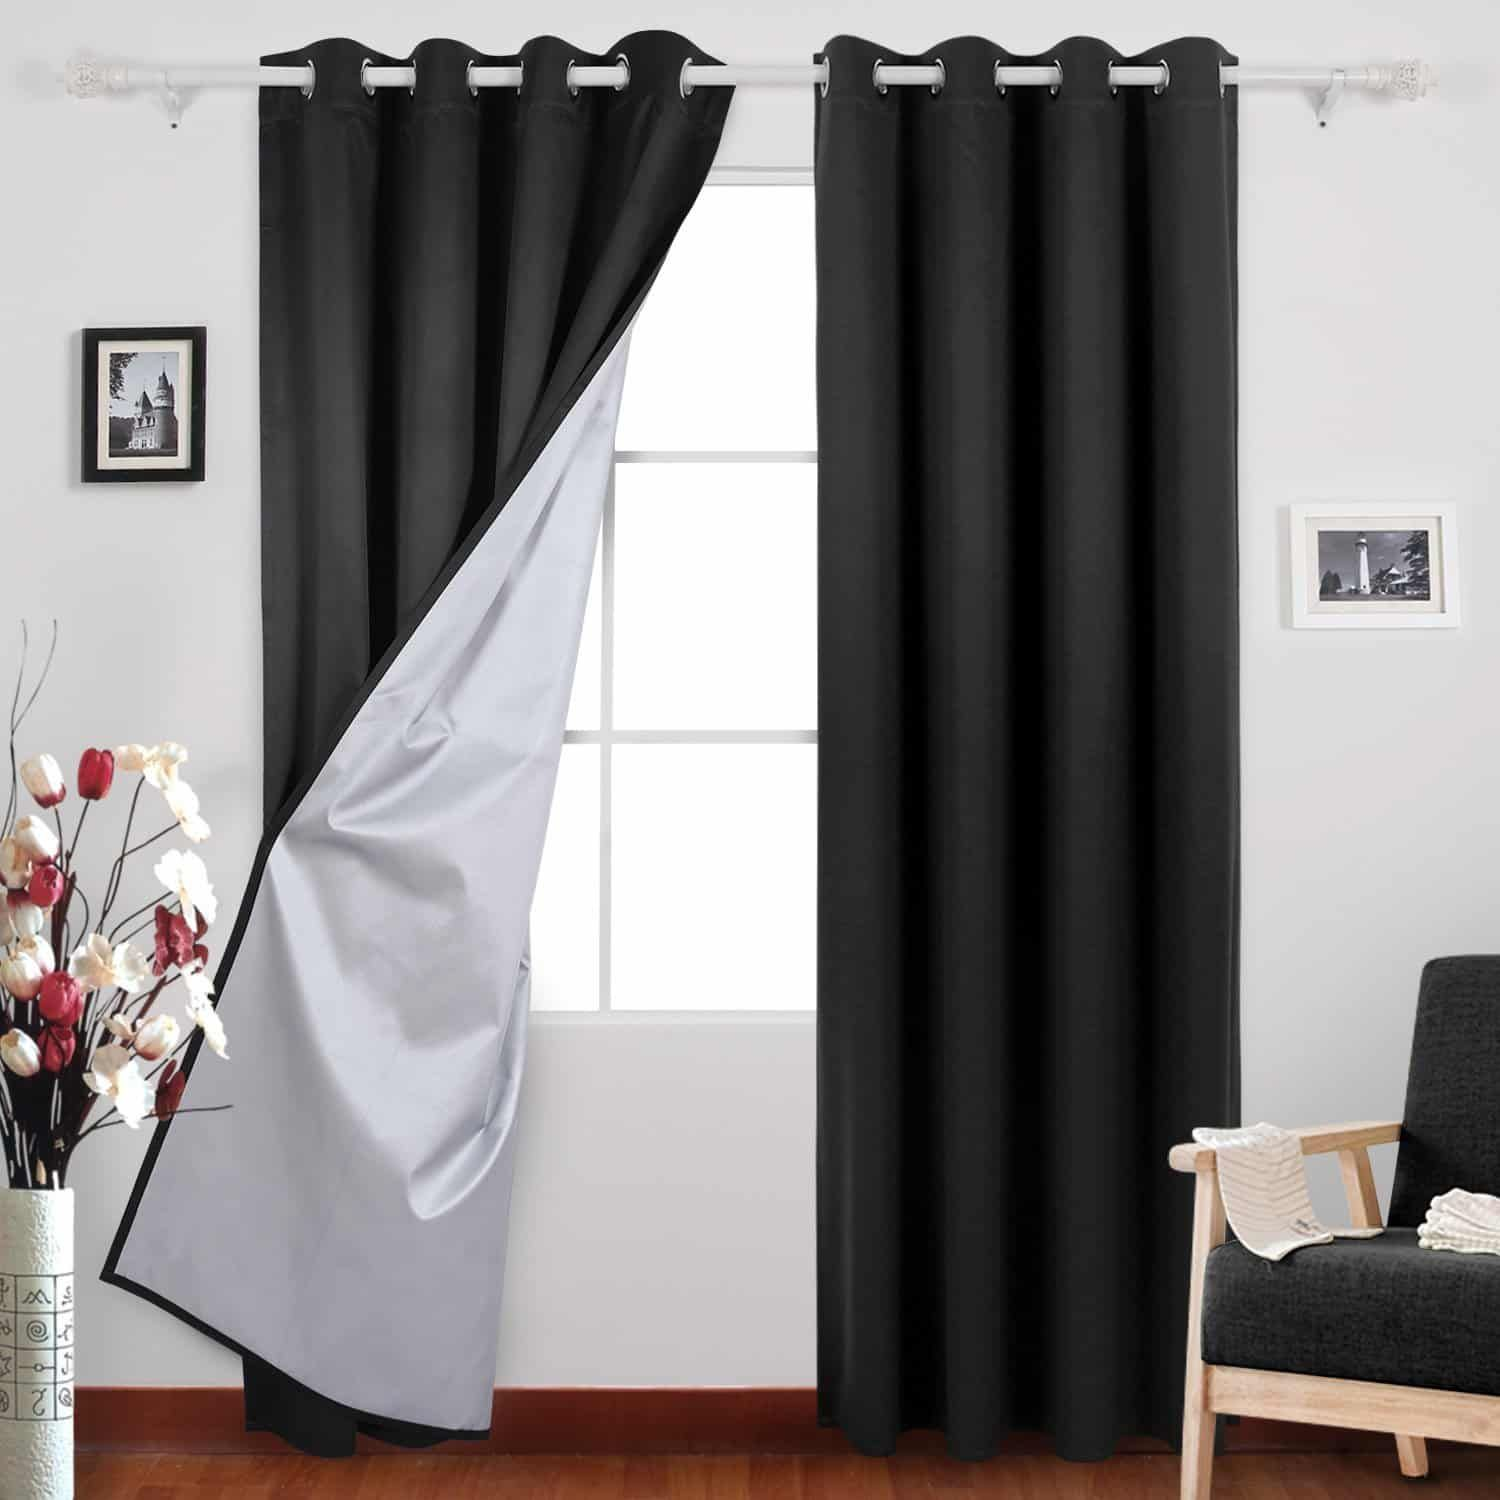 Top 10 Best Blackout Curtains In 2020 Home Window Curtains Curtains Living Room Insulated Blackout Curtains Blackout Curtains